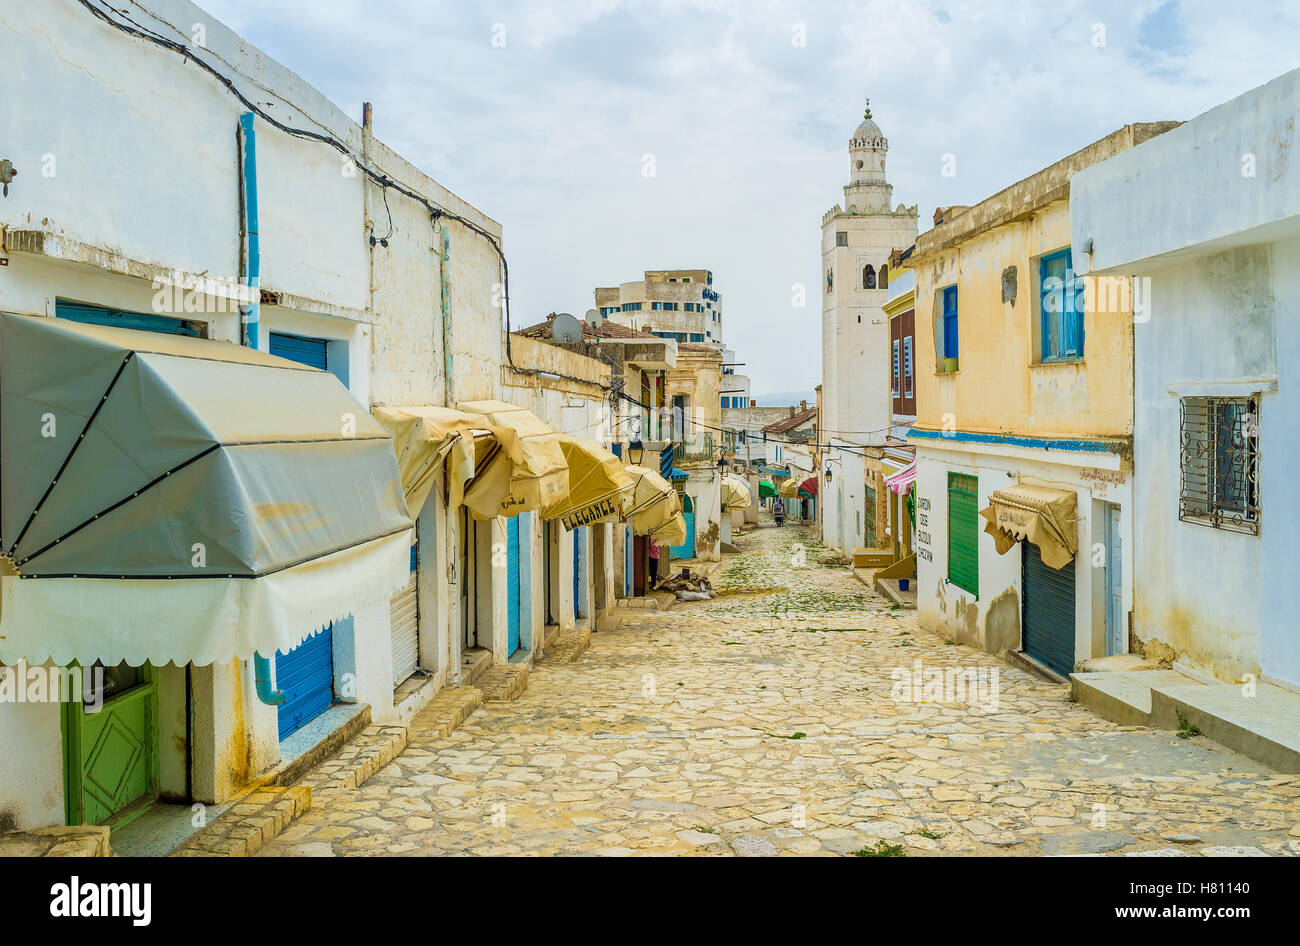 The working neighborhood with numerous workshops and stalls with the high white minaret on background, El Kef - Stock Image